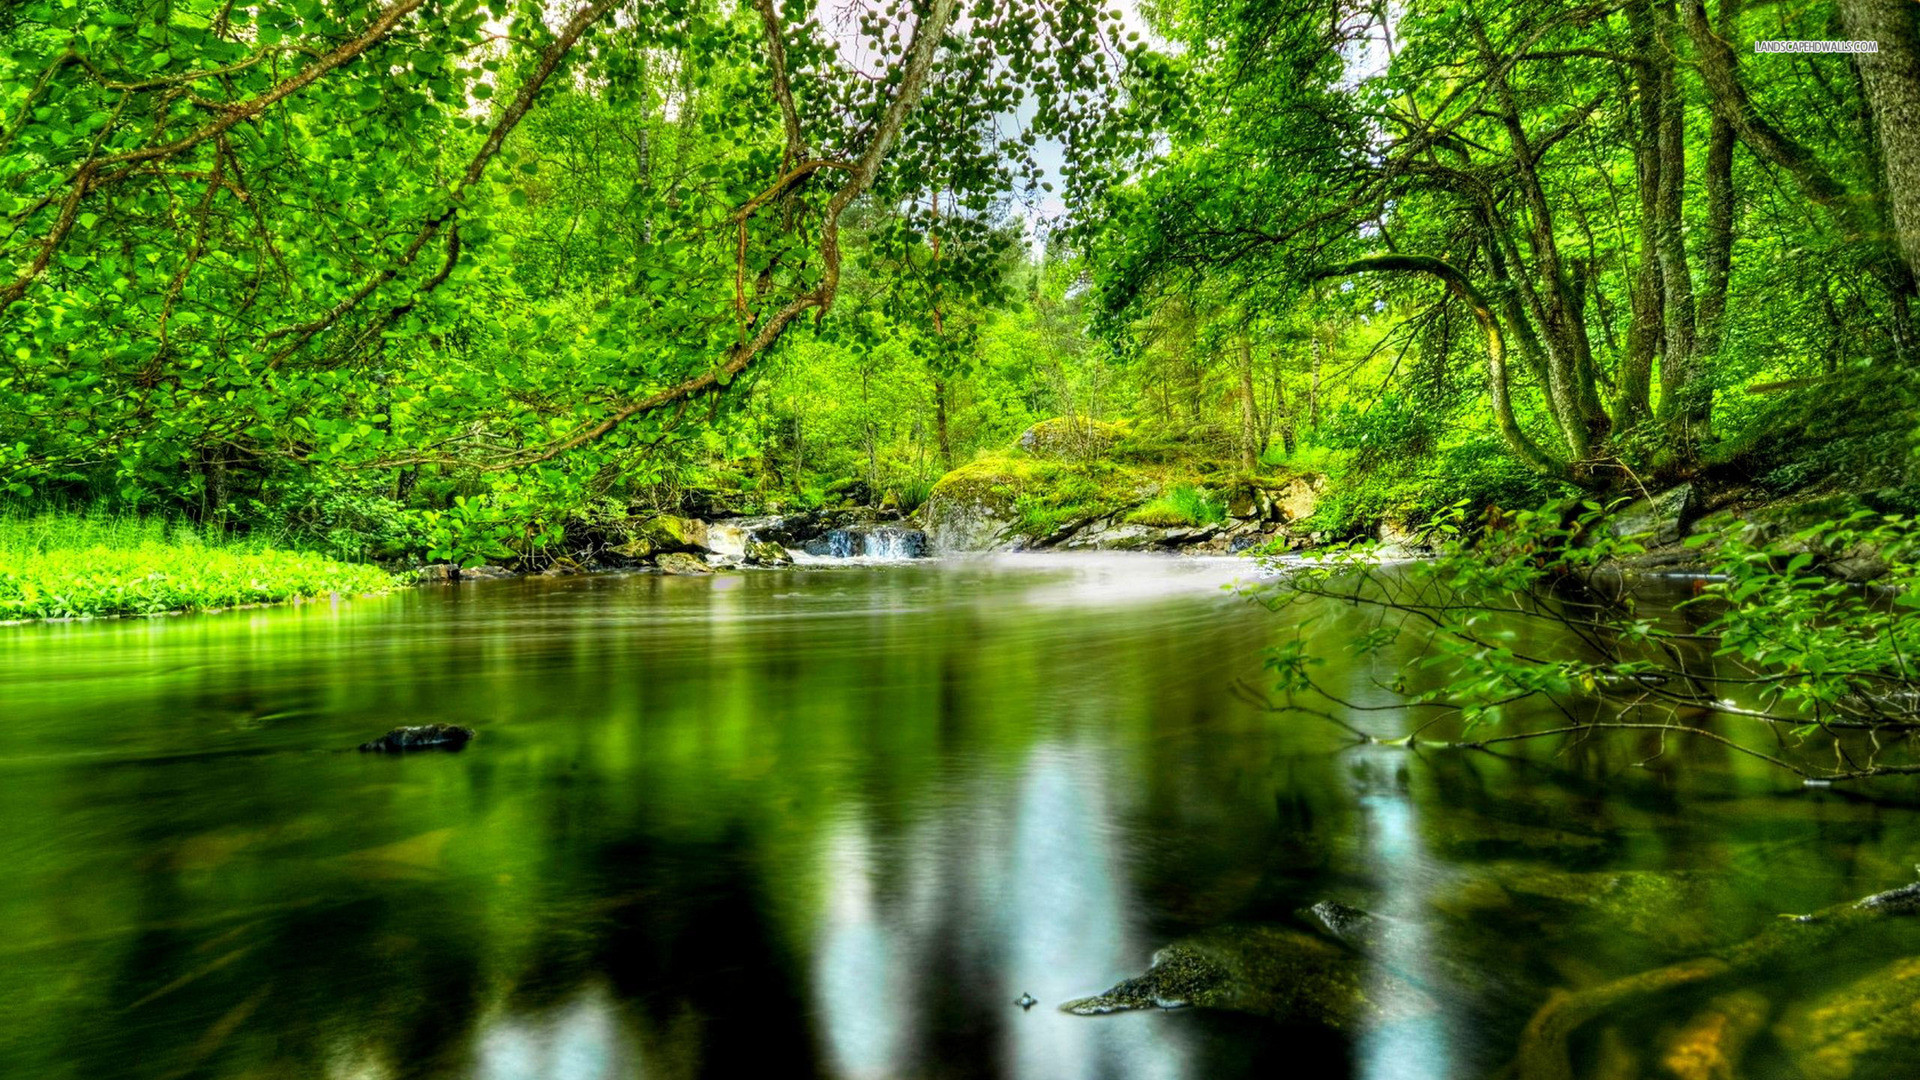 1920x1080 hd-forest-river-nature-wallpapers-.jpg (JPEG Image